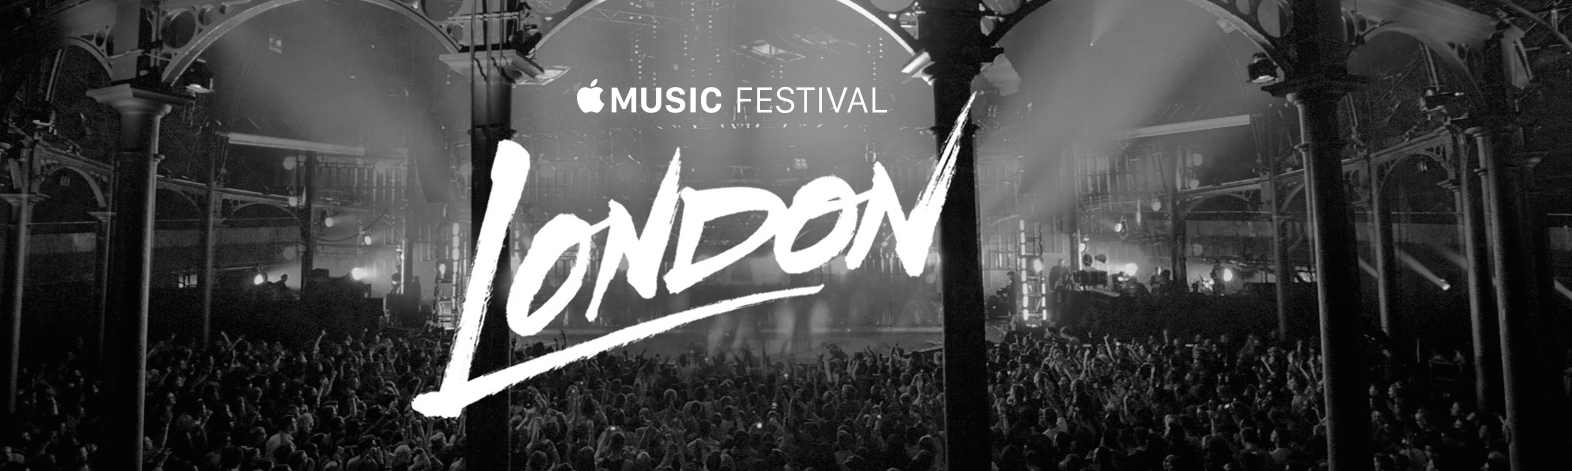 Apple Music Festival teaser 002